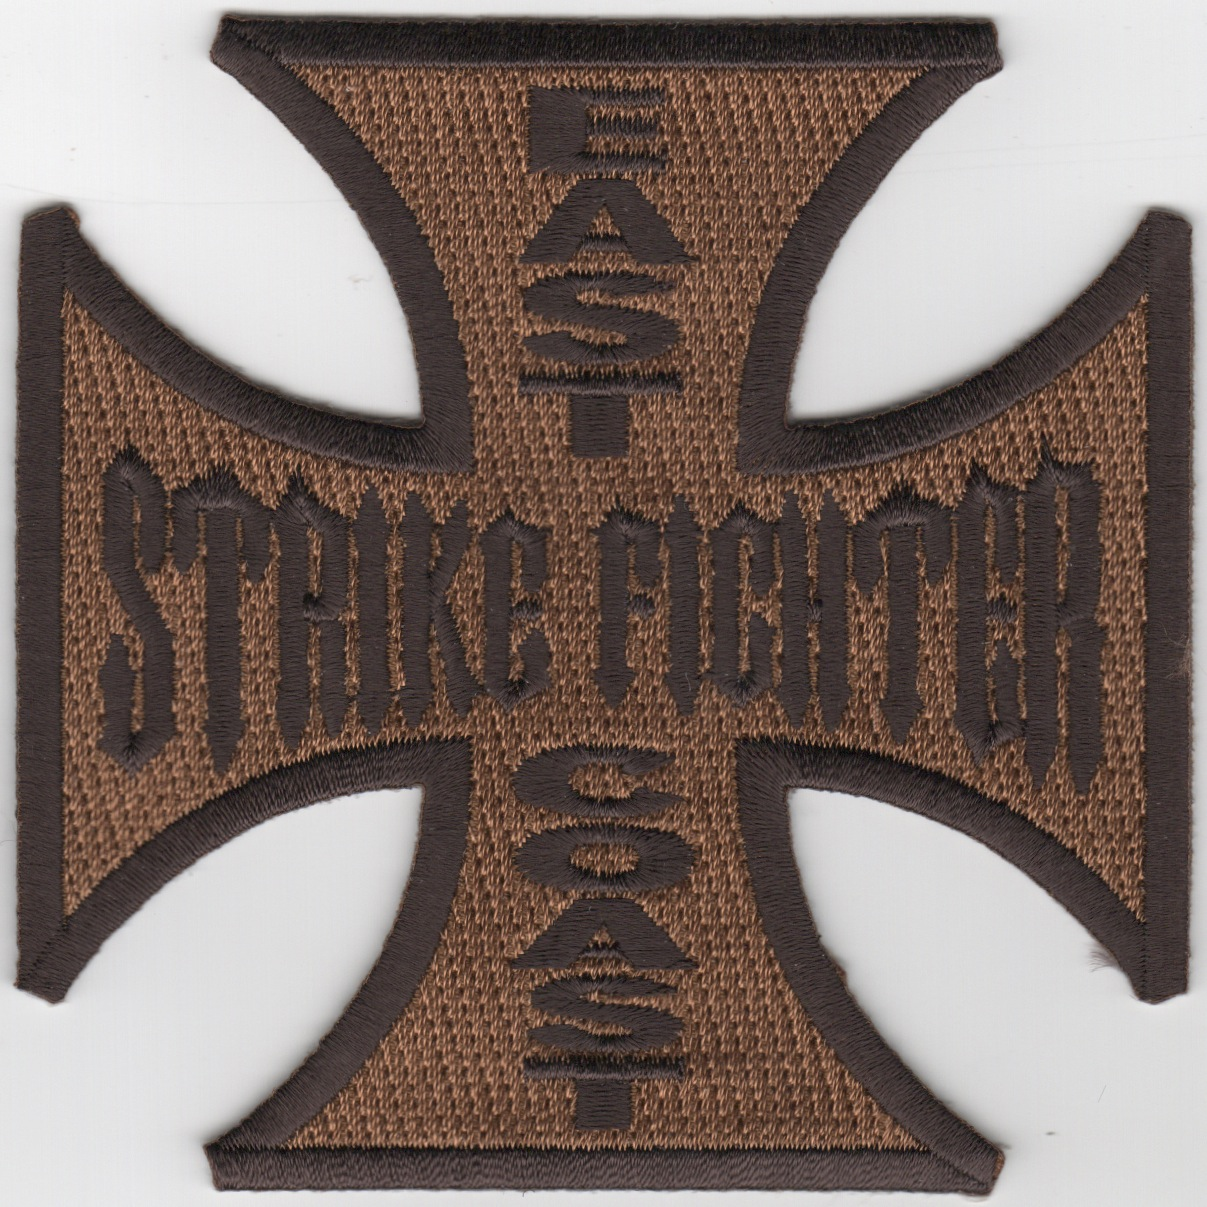 East Coast Strike Fighter Maltese Cross (Des)